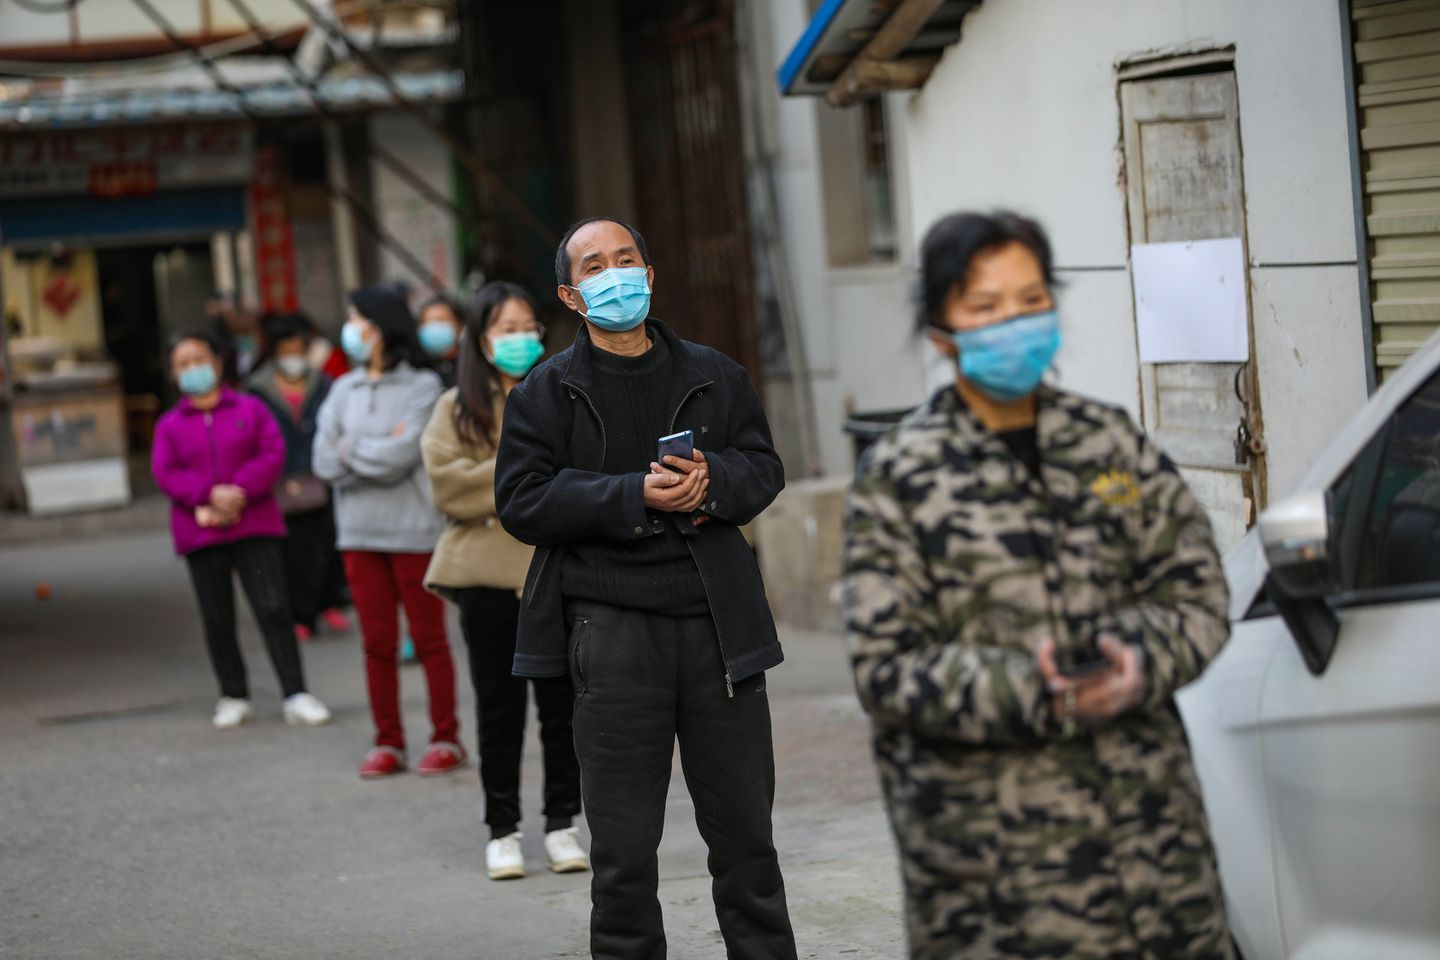 Wuhan reports no new virus cases, offering hope to world - The ...